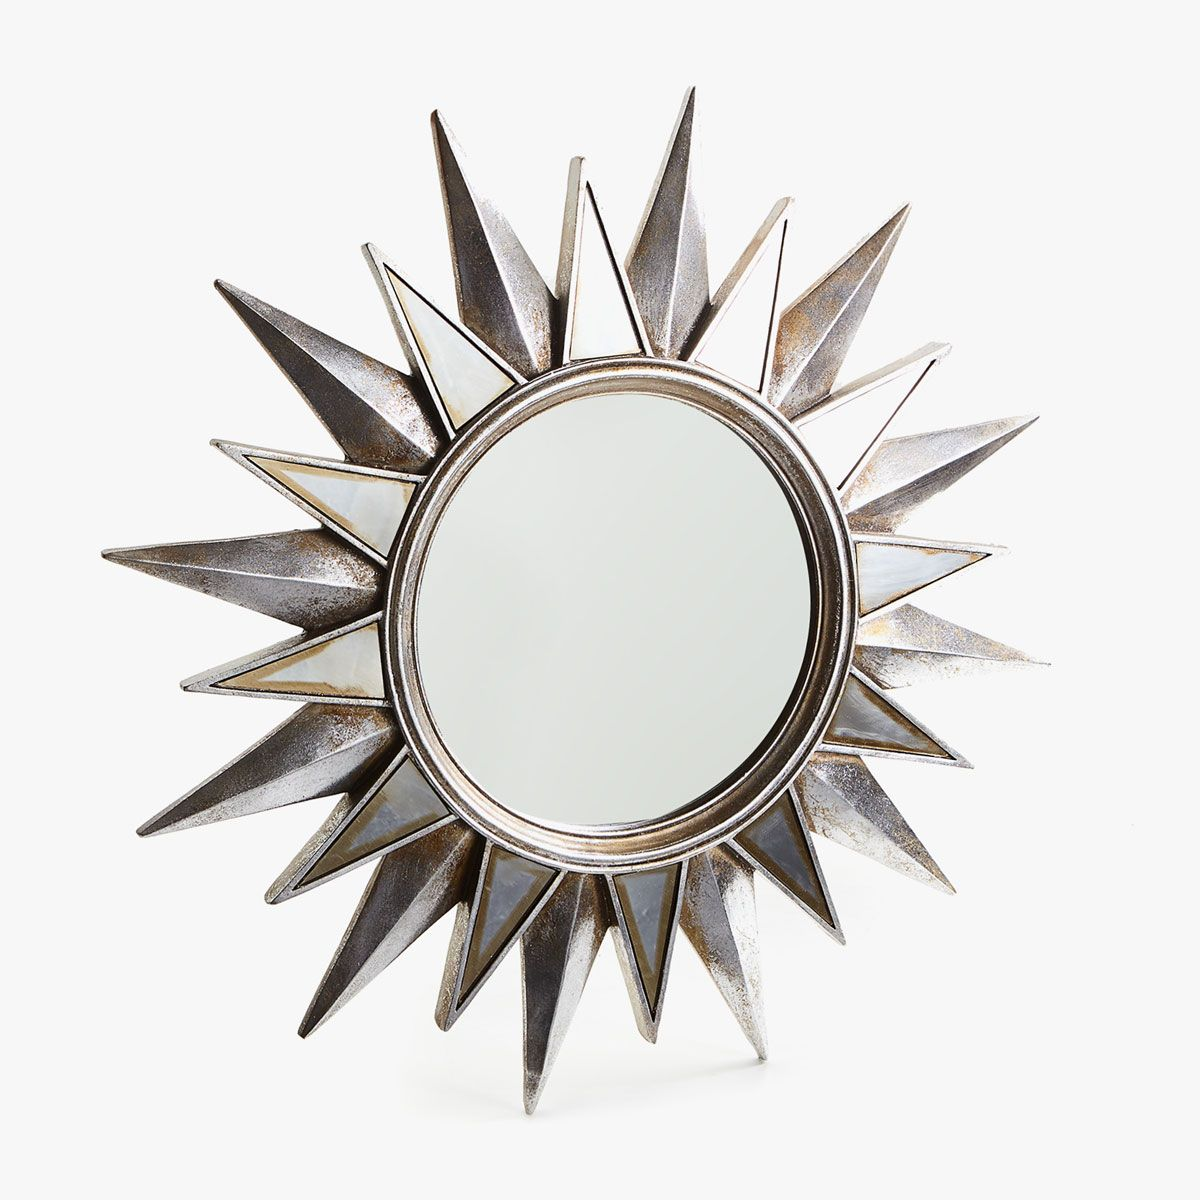 Sun Shaped Mirrors Image 1 Of The Product Silver Sun Shaped Mirror Dining Room